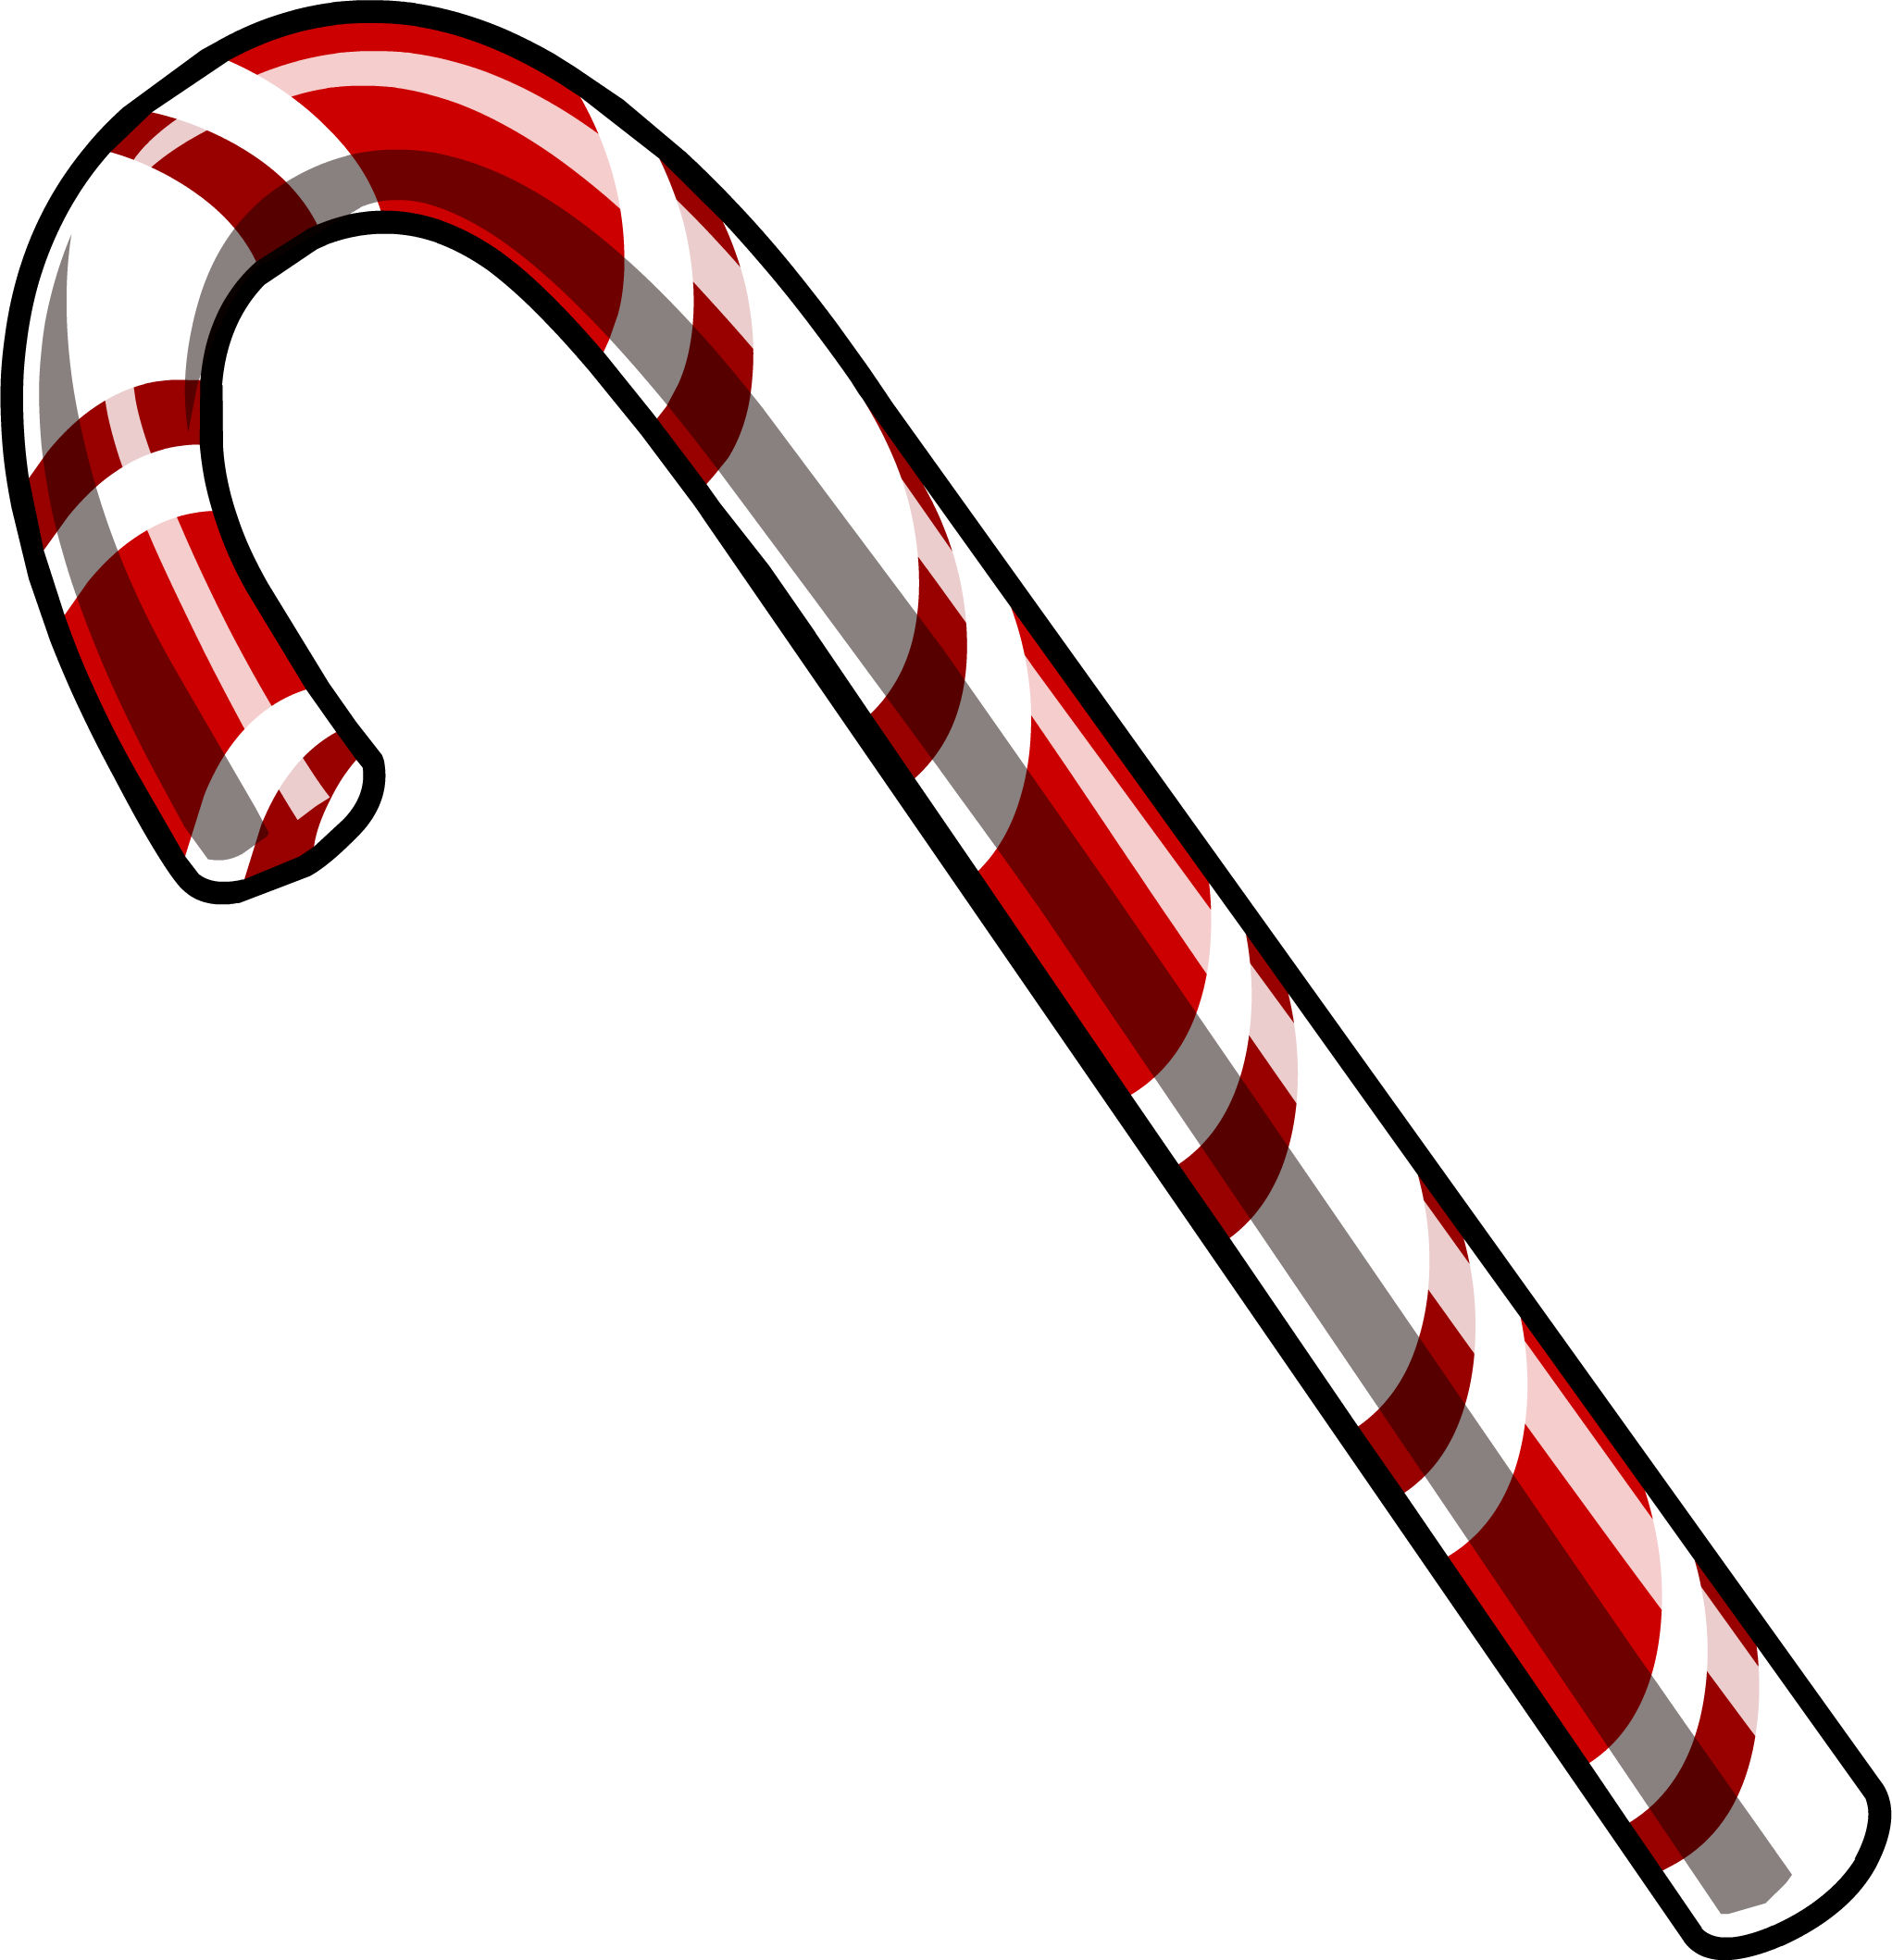 Download Candy Cane PNG File.